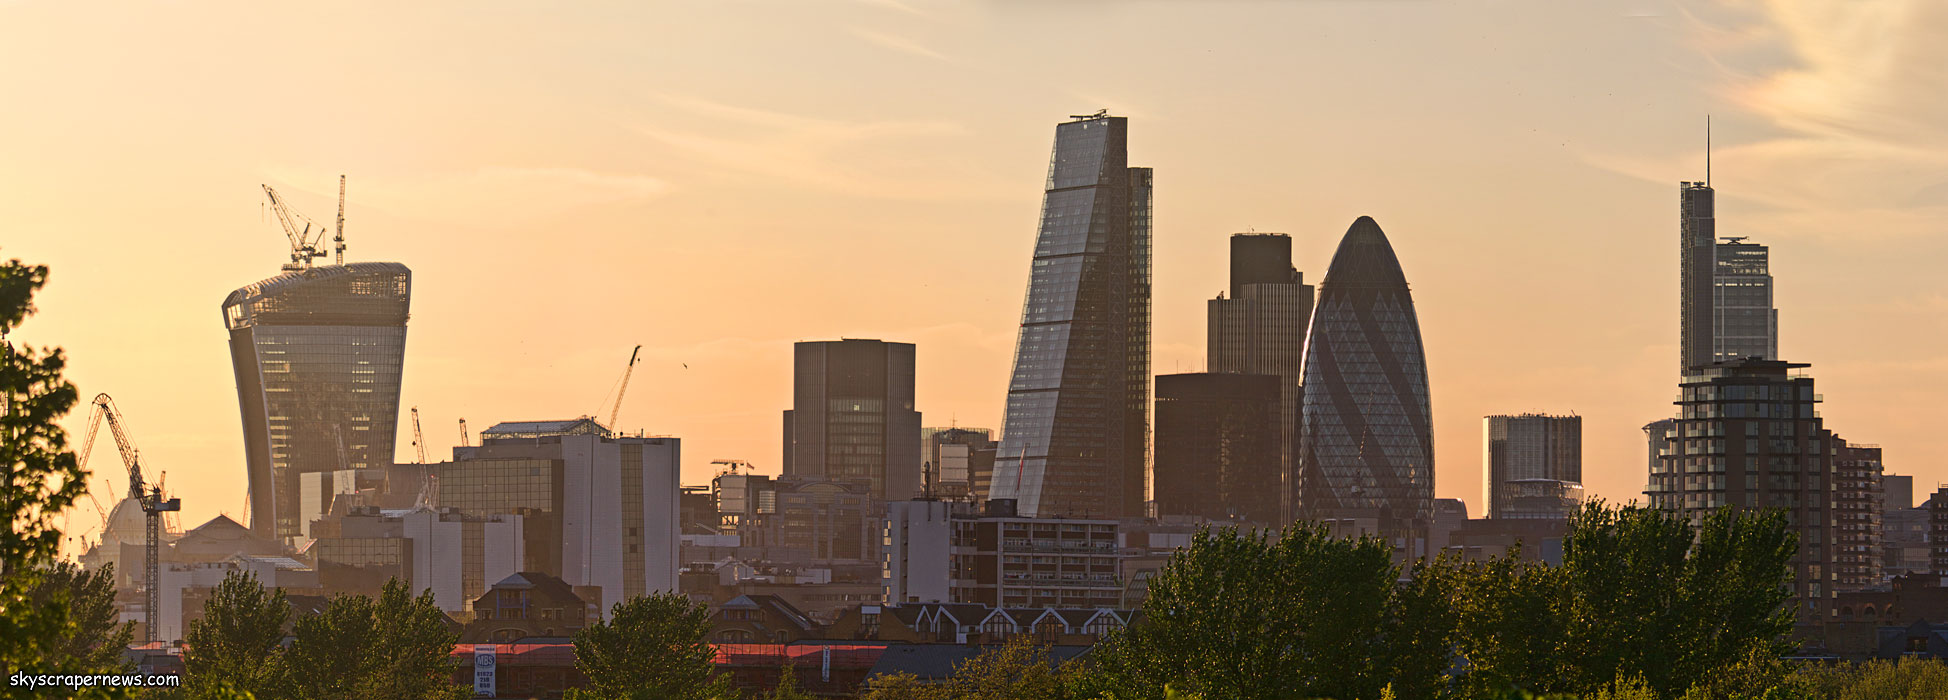 Skyscrapernews Com Image Library 1079 London From